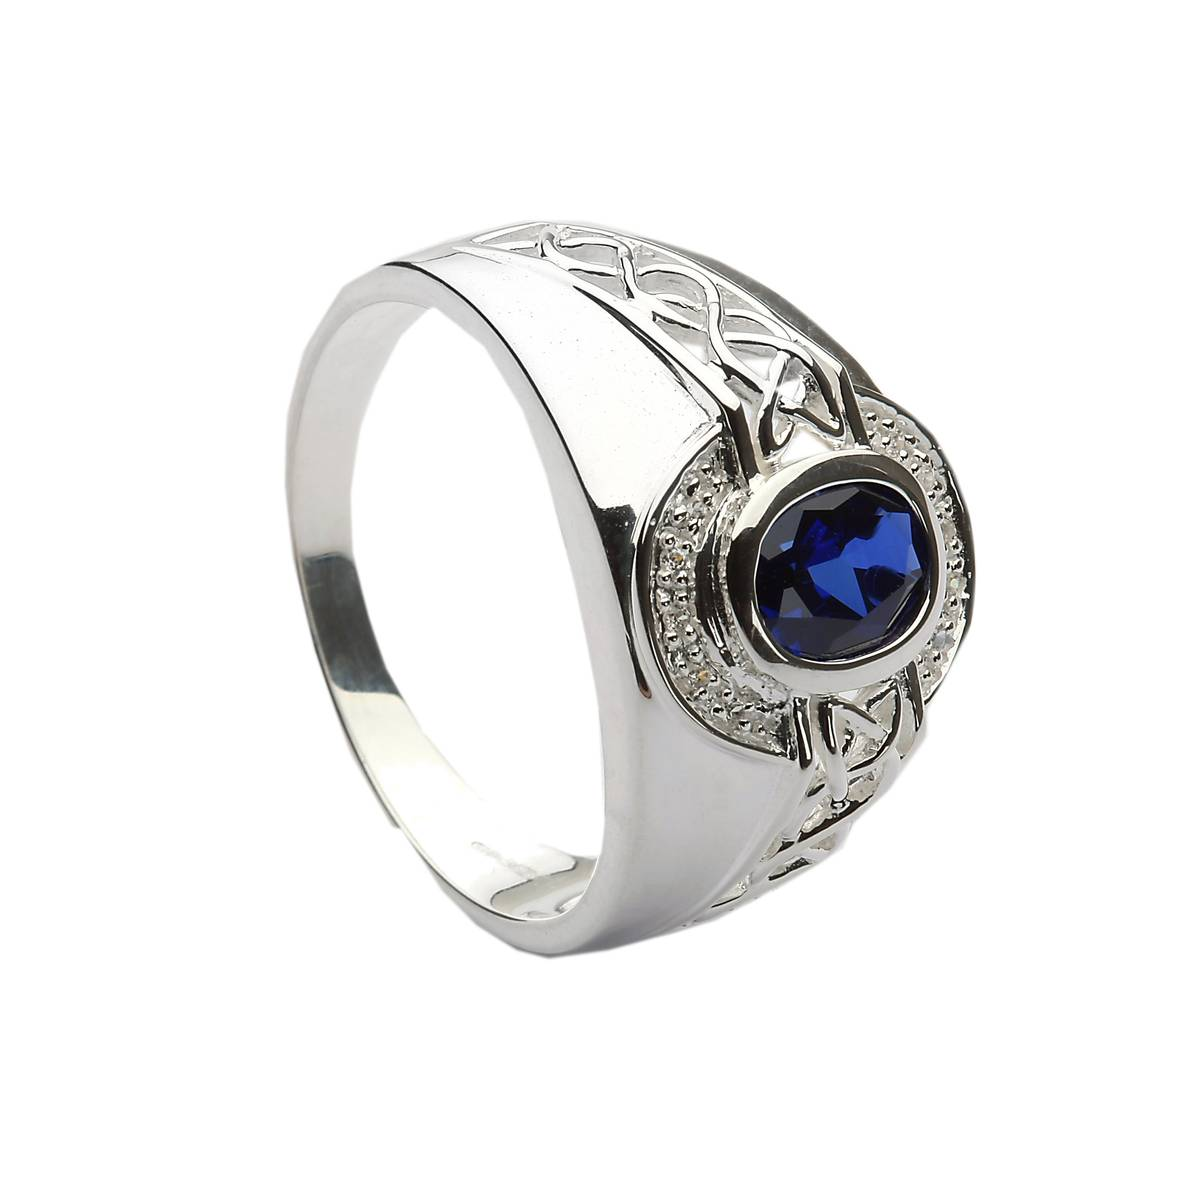 Silver synthetic sapphire/CZ set celtic ring similar to collegiate ring.